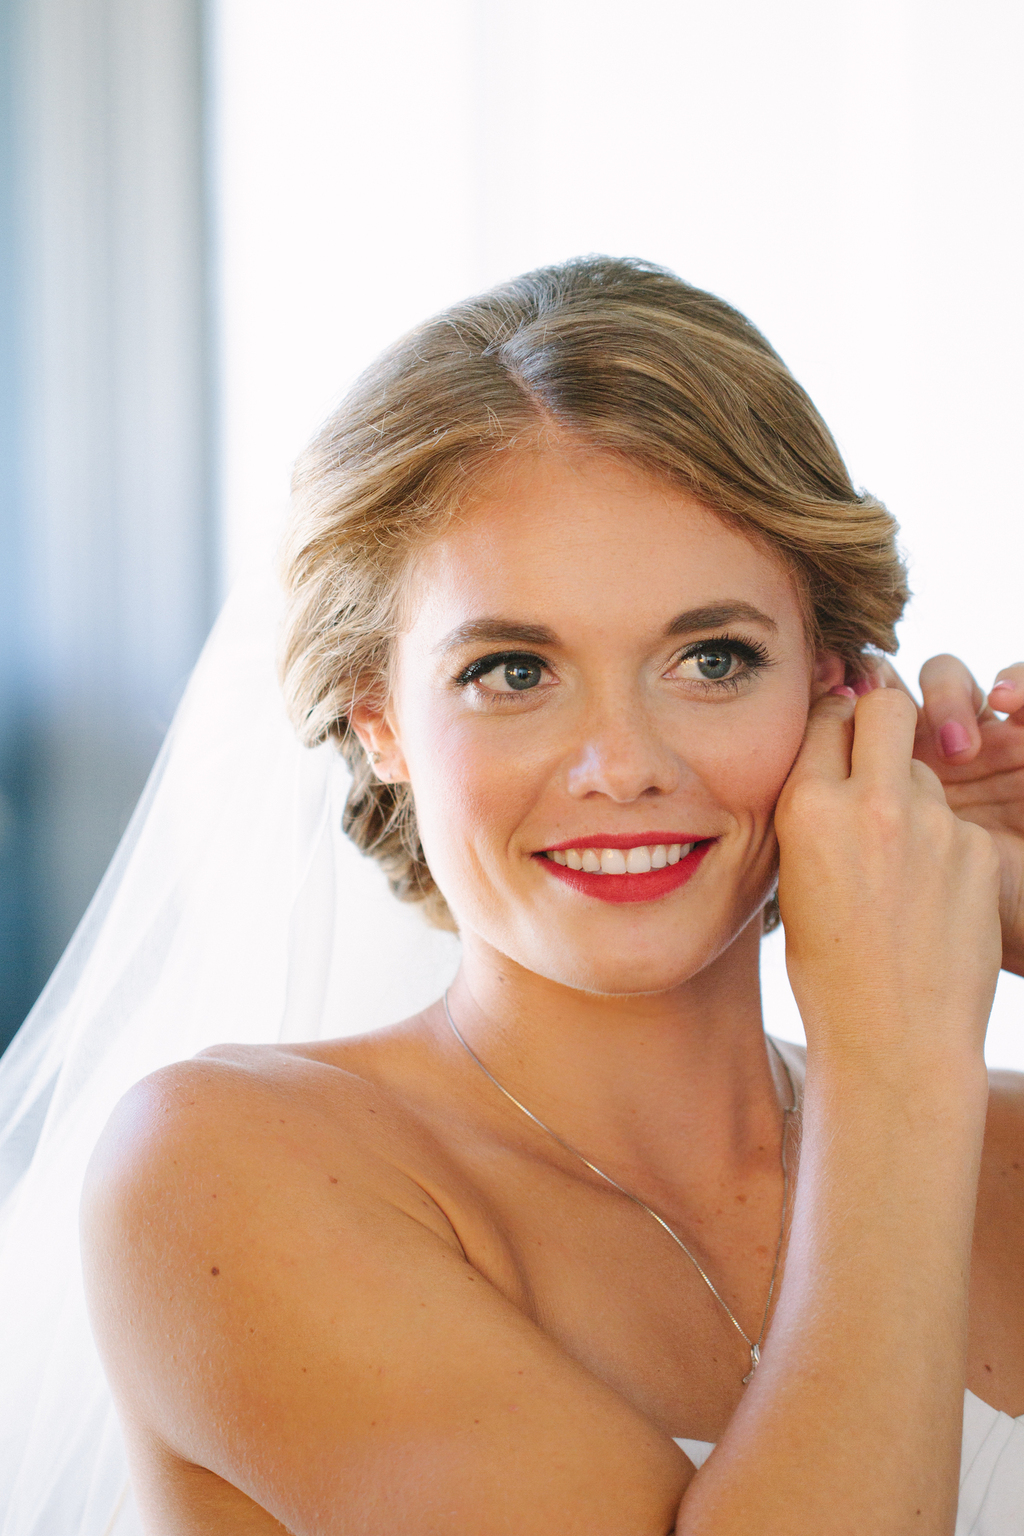 Classic Wedding Hair And Makeup : Beautiful classic wedding day hair and makeup OneWed.com